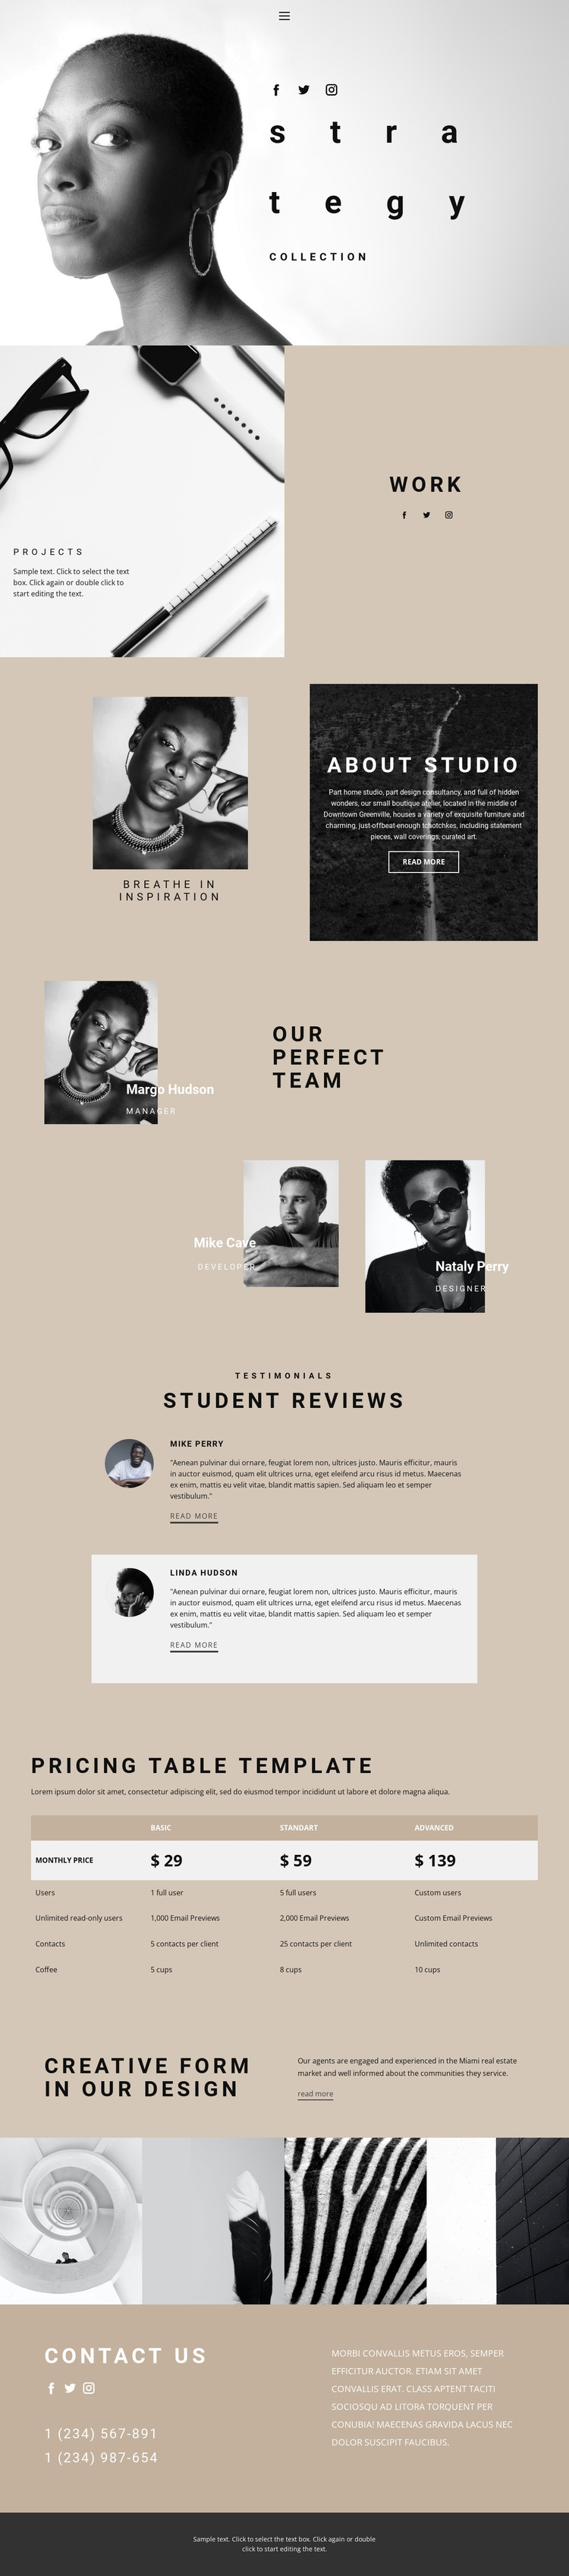 Strategy and grow HTML5 Template